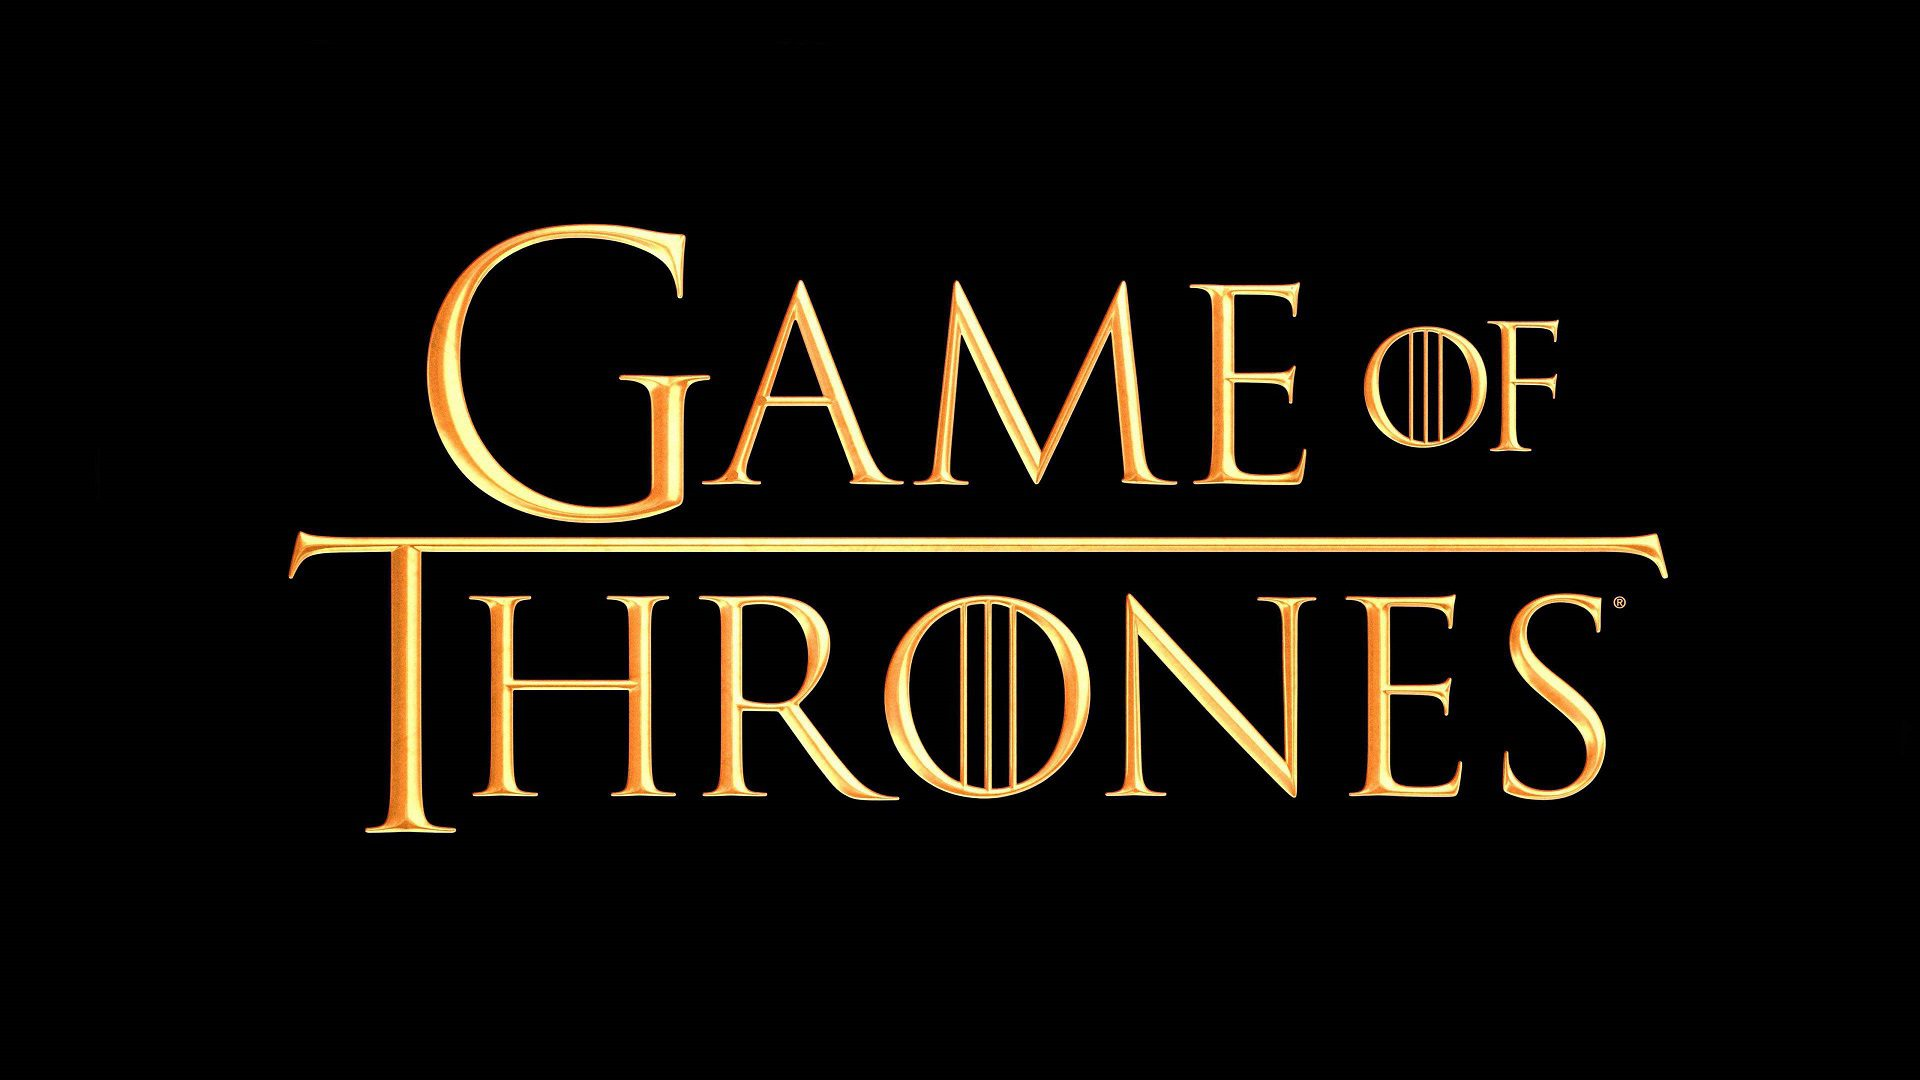 GAME OF THRONES SEASON 7 SOUNDTRACK Out Today digitally